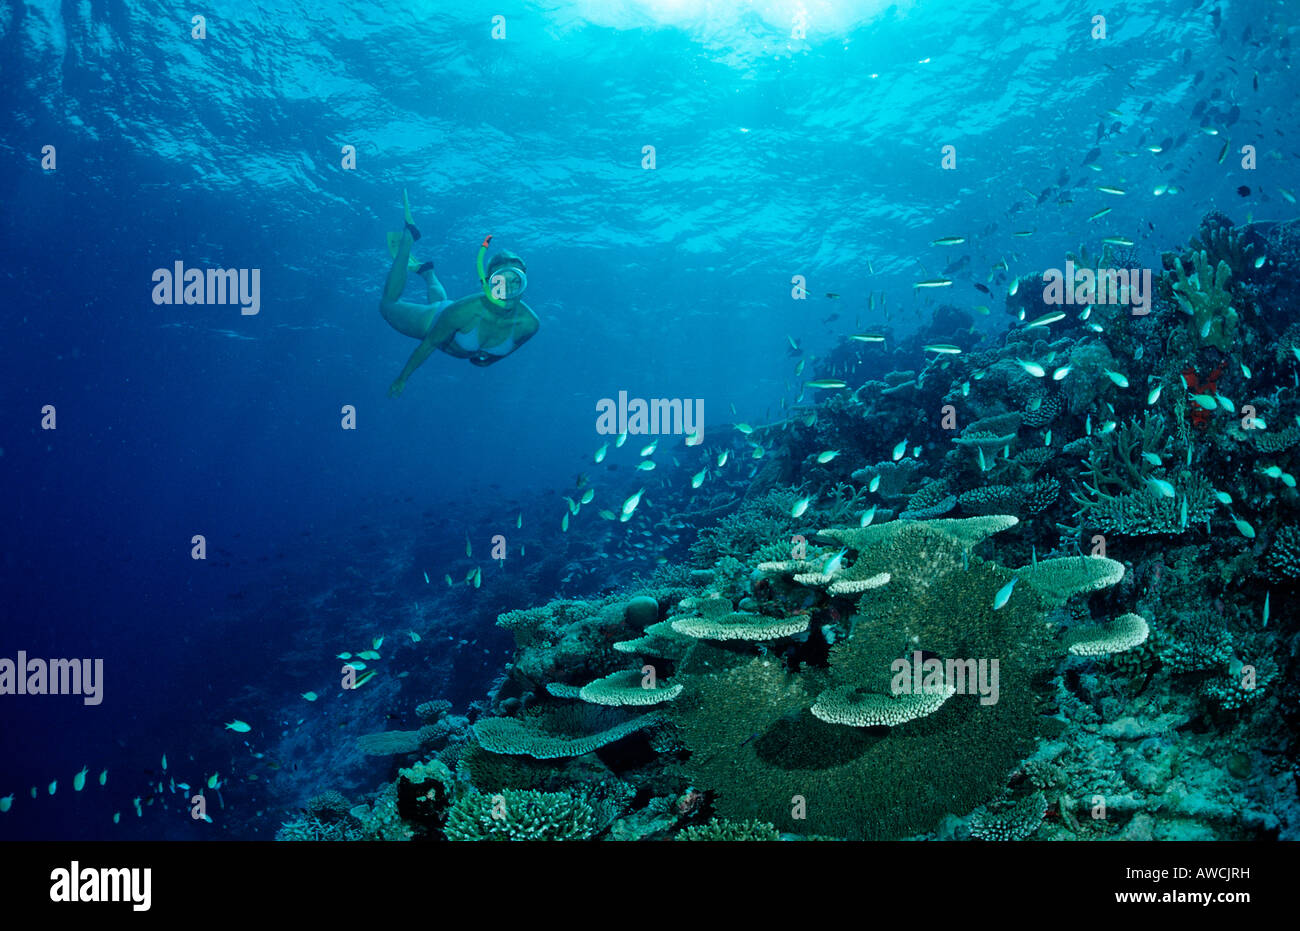 Snorkeling over Coral Reef Maldives Indian Ocean Meemu Atoll - Stock Image